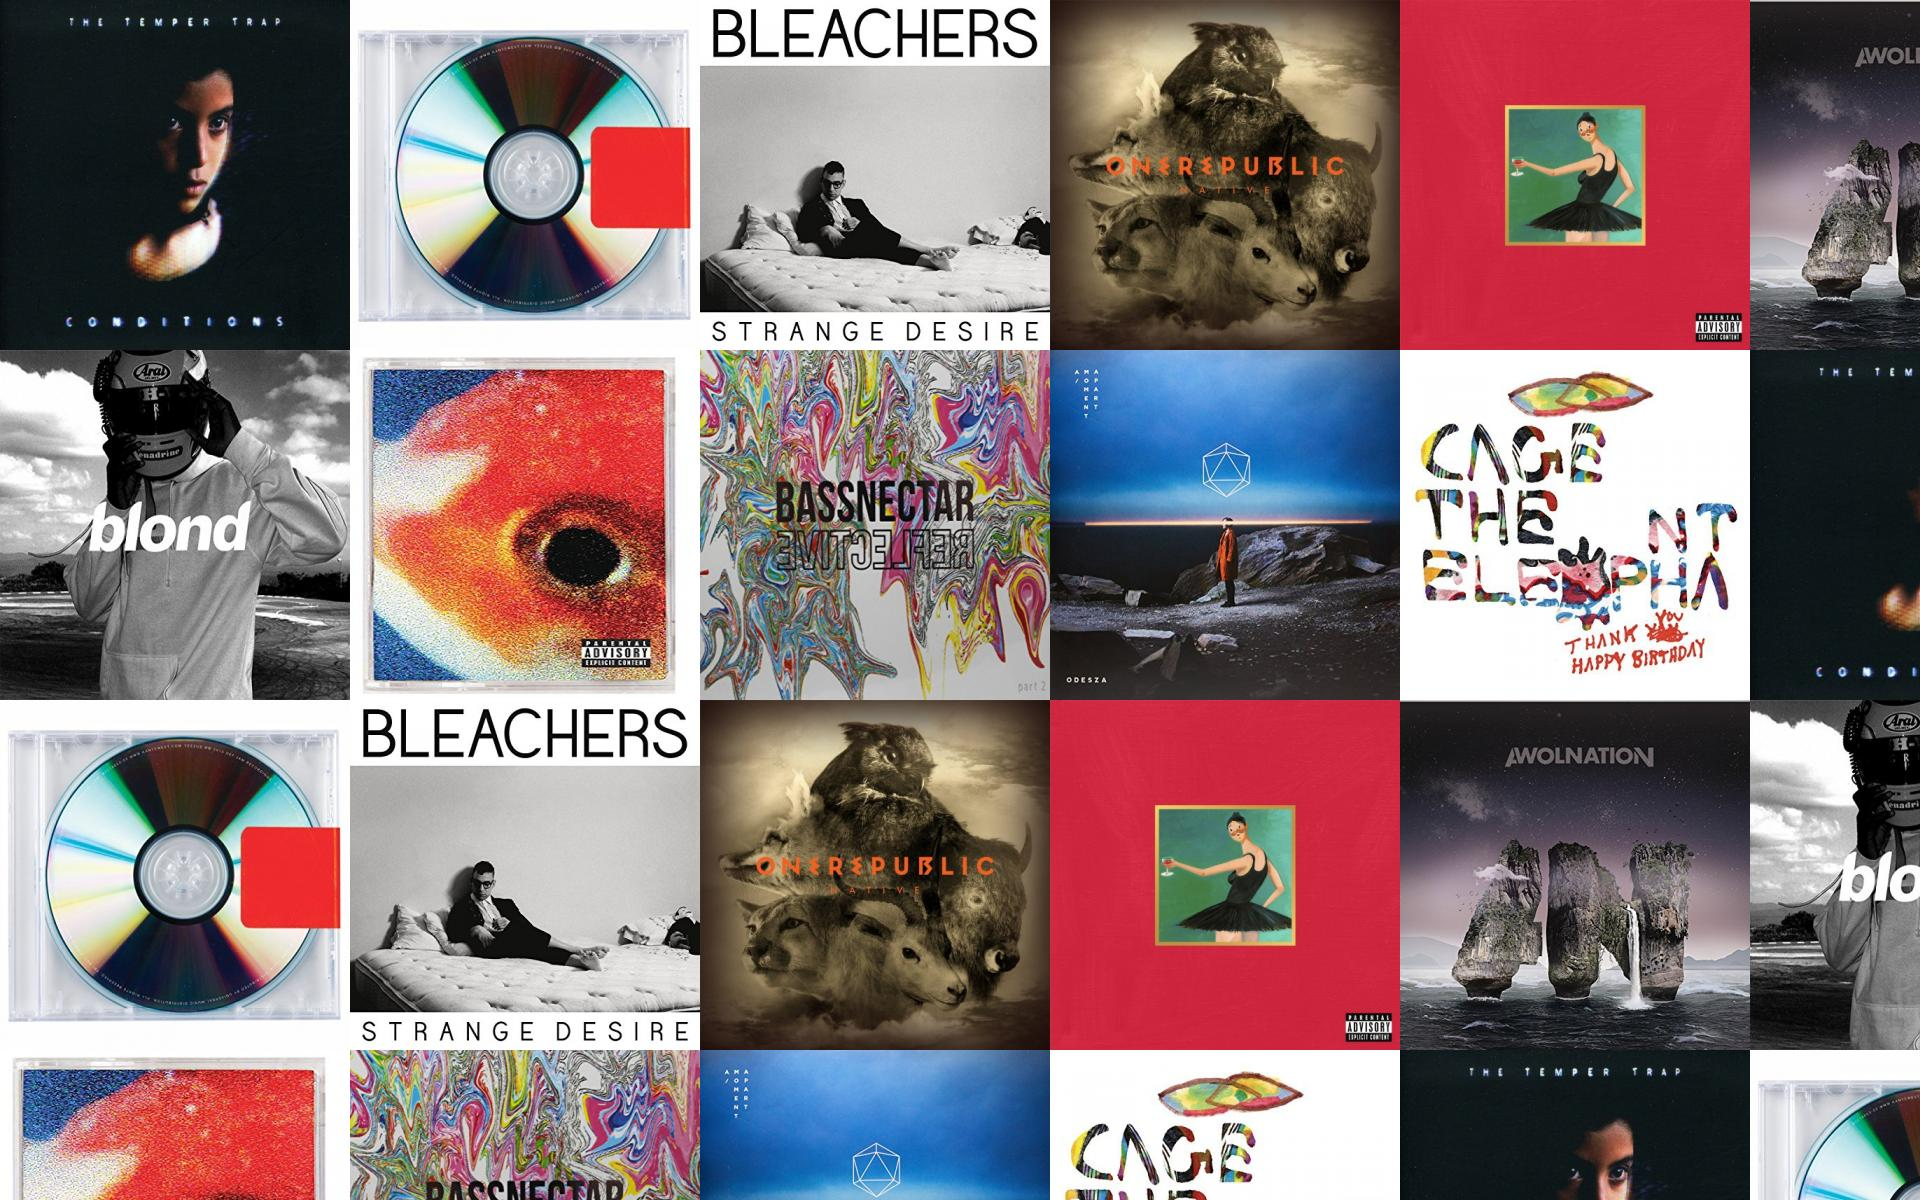 Download This Free Wallpaper With Images Of Temper Trap Conditions Kanye West Yeezus Bleachers Strange Desires Onerepublic Native